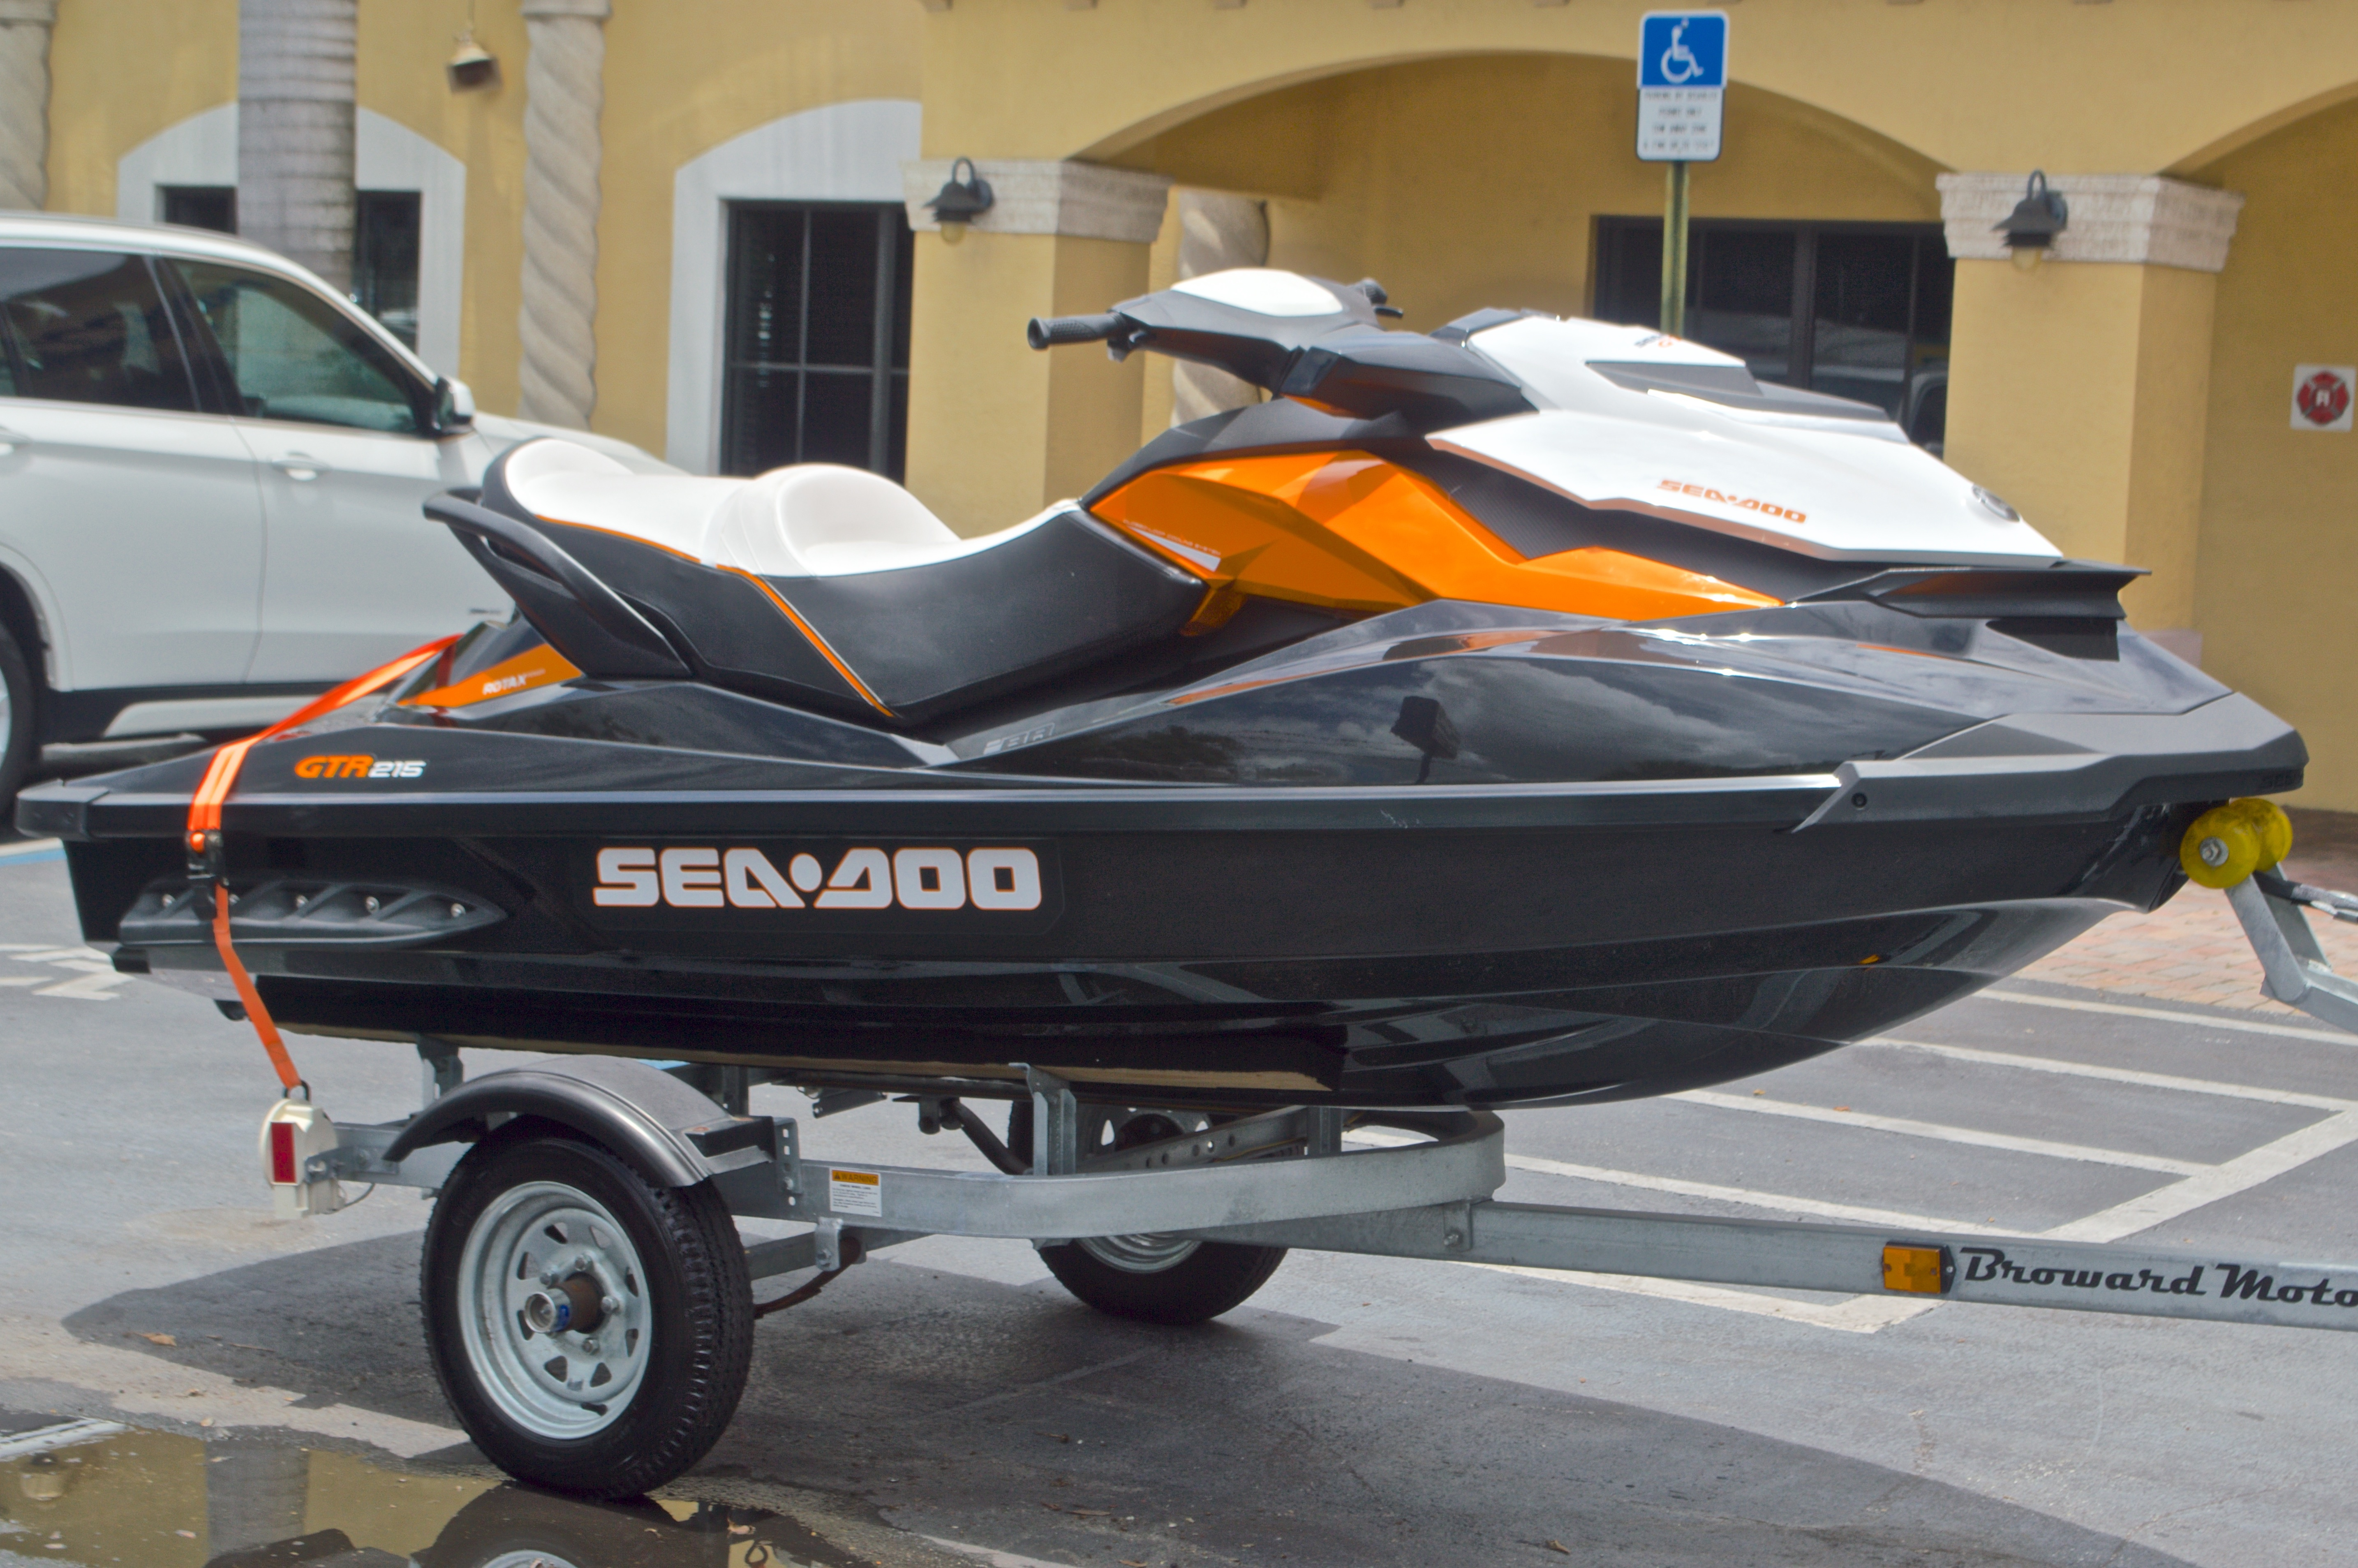 Thumbnail 1 for Used 2014 Sea-Doo GTR 215 boat for sale in West Palm Beach, FL